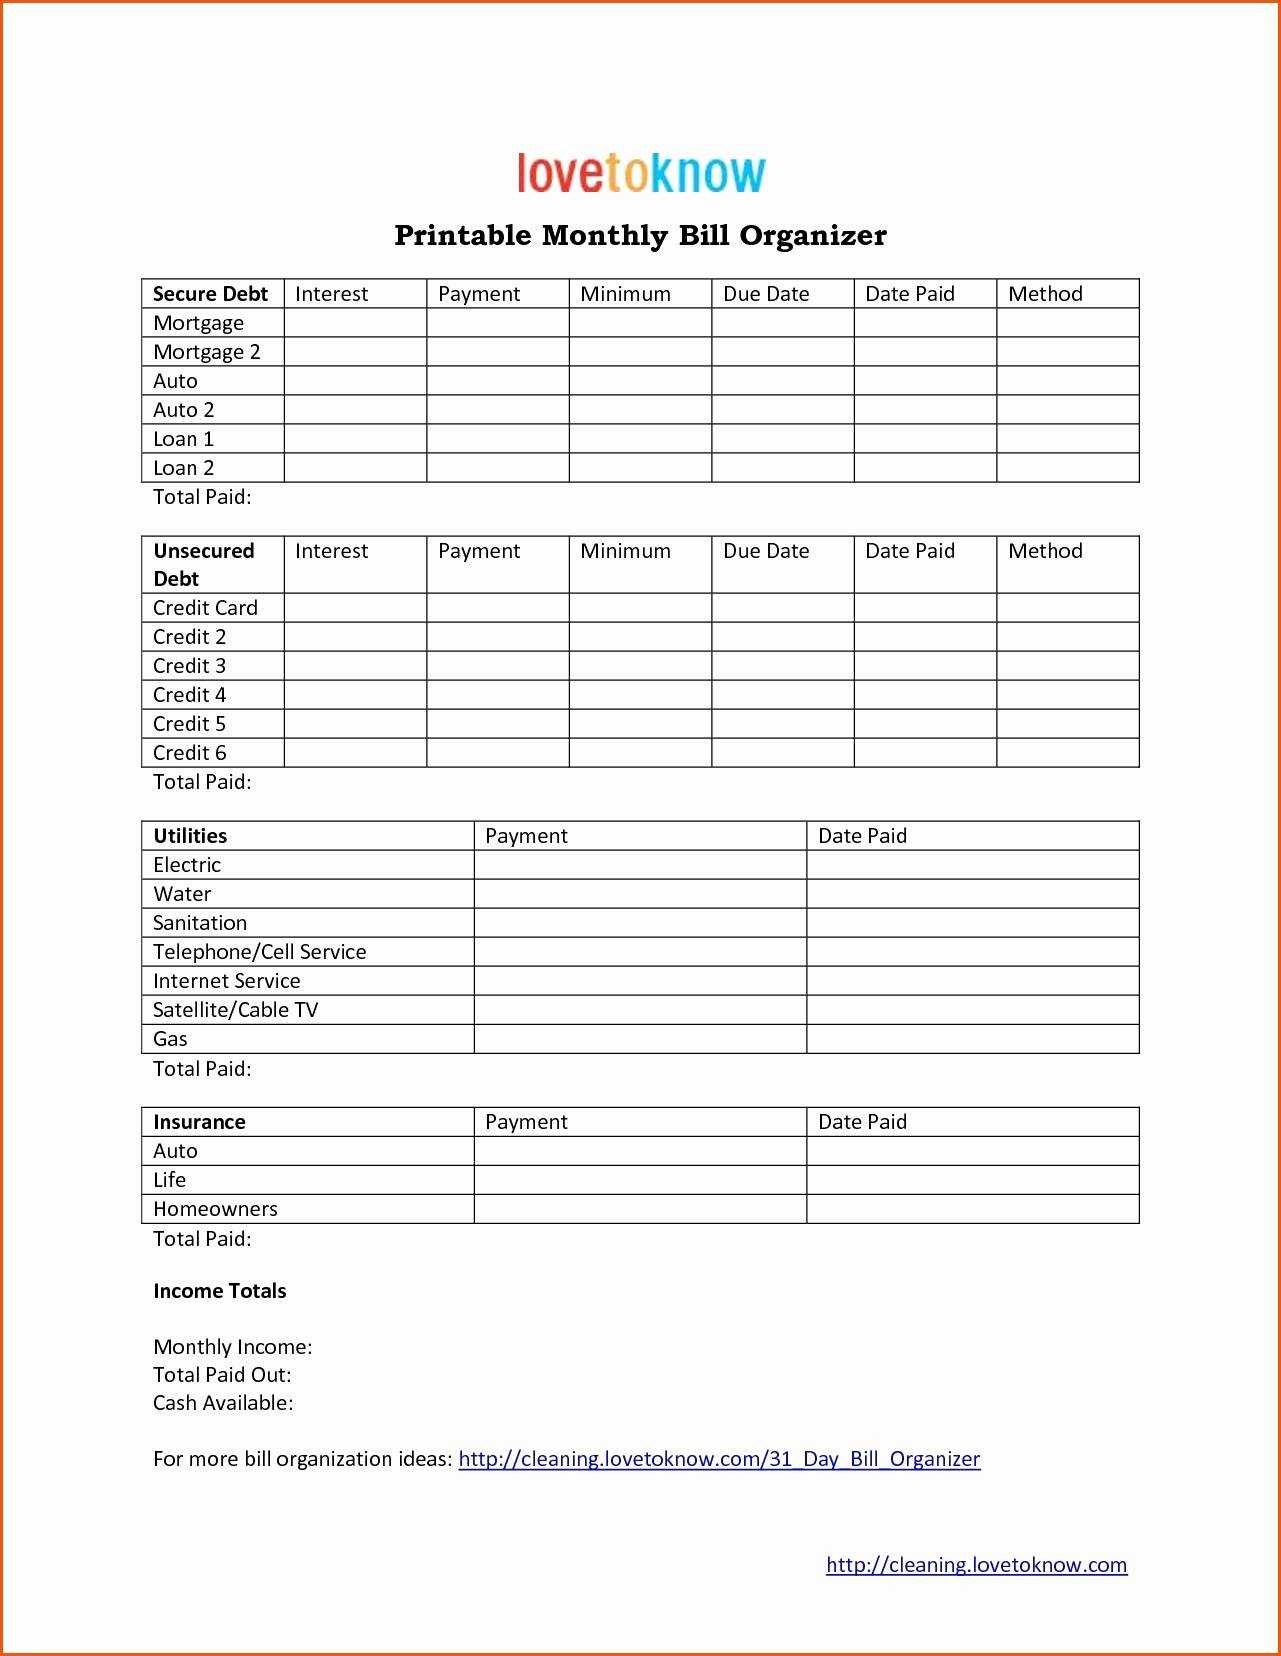 Monthly Profit And Loss Statement Template And Bill Pay Calendar pertaining to Printable Monthly Calendar Templates Bills